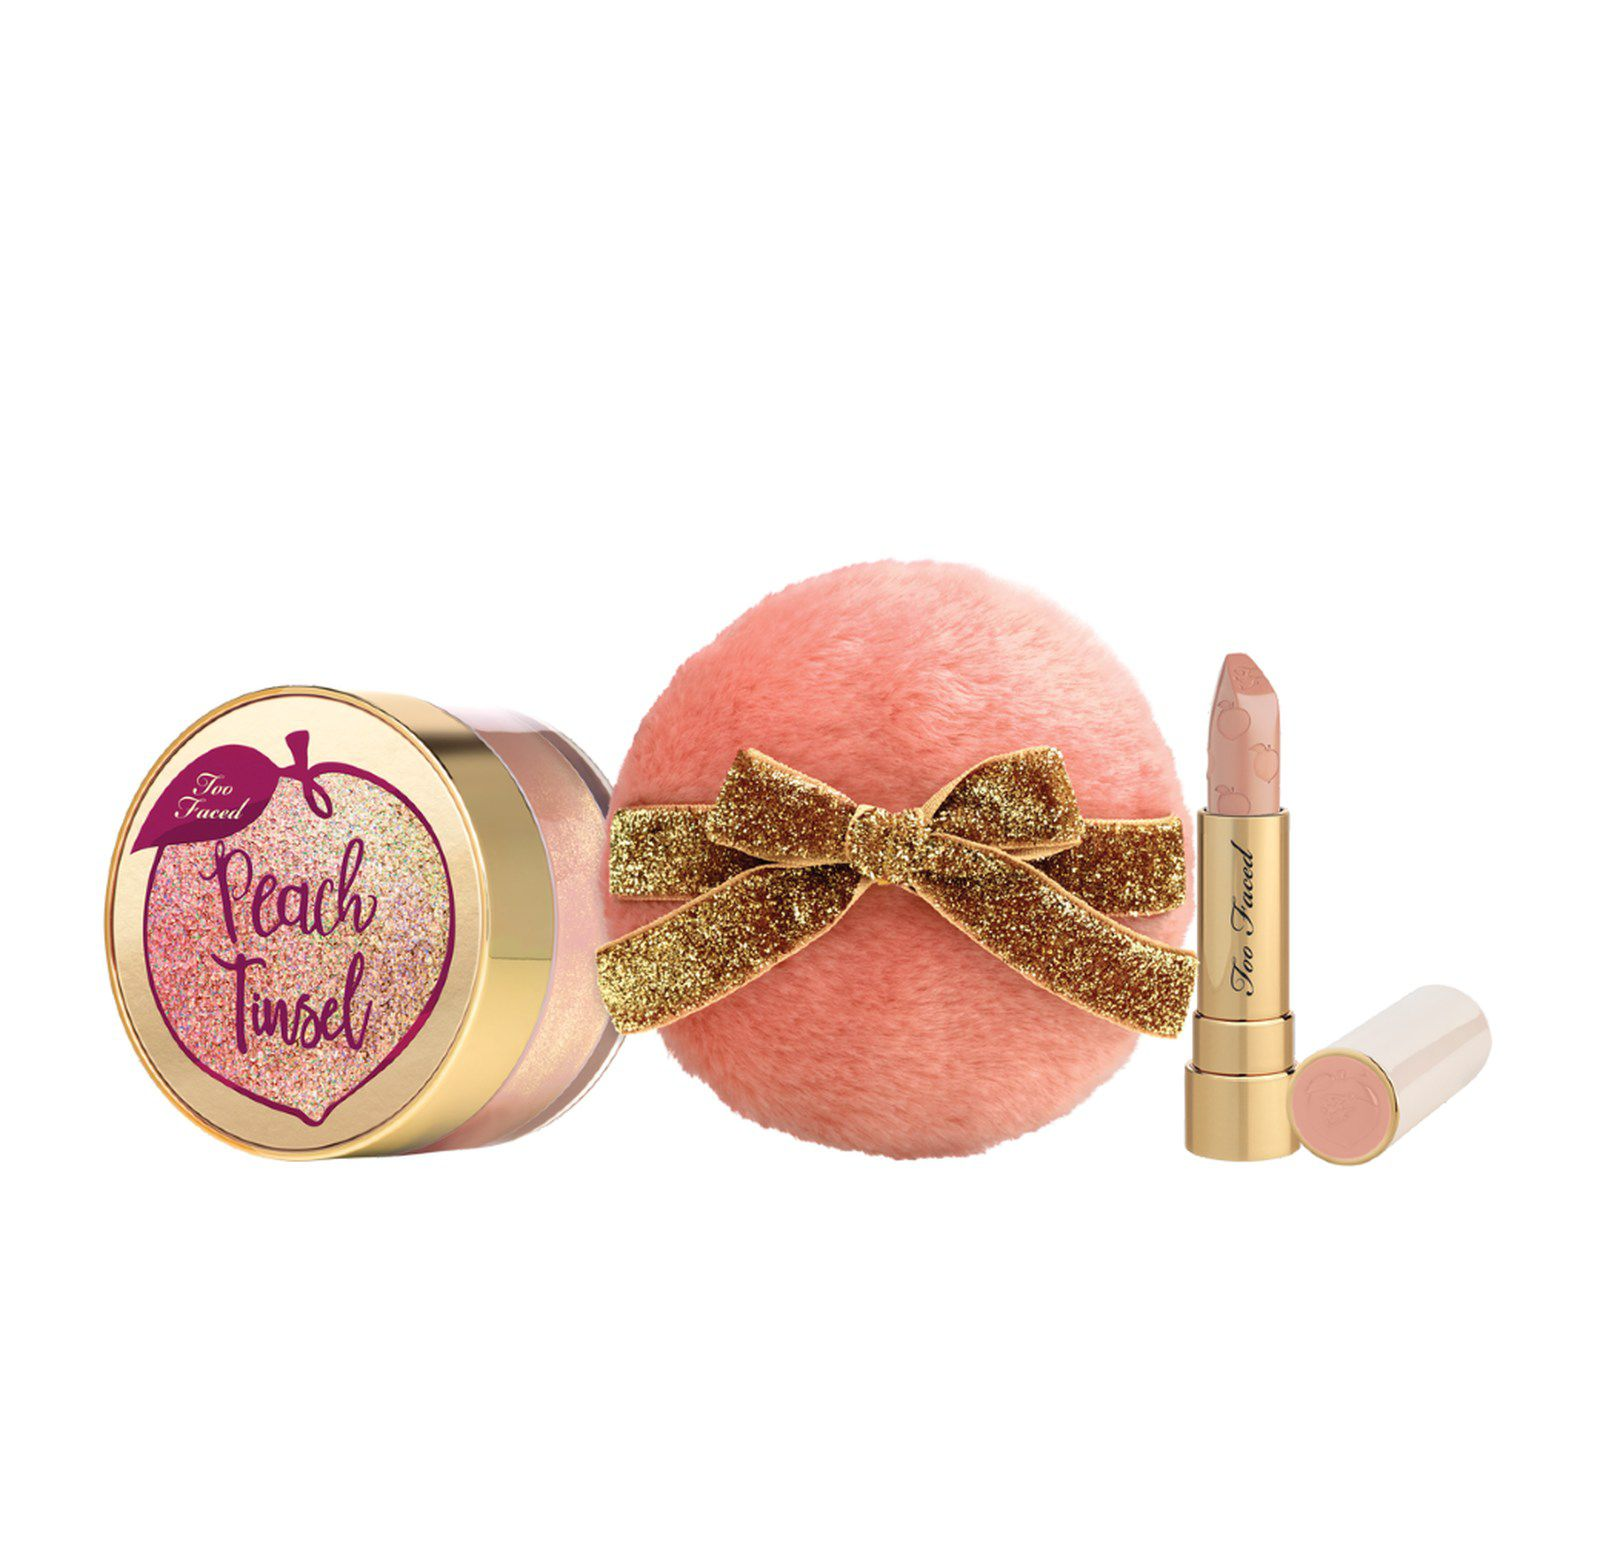 Peach Tinsel Loose Sparkling & Lipstick Set  TOO FACED